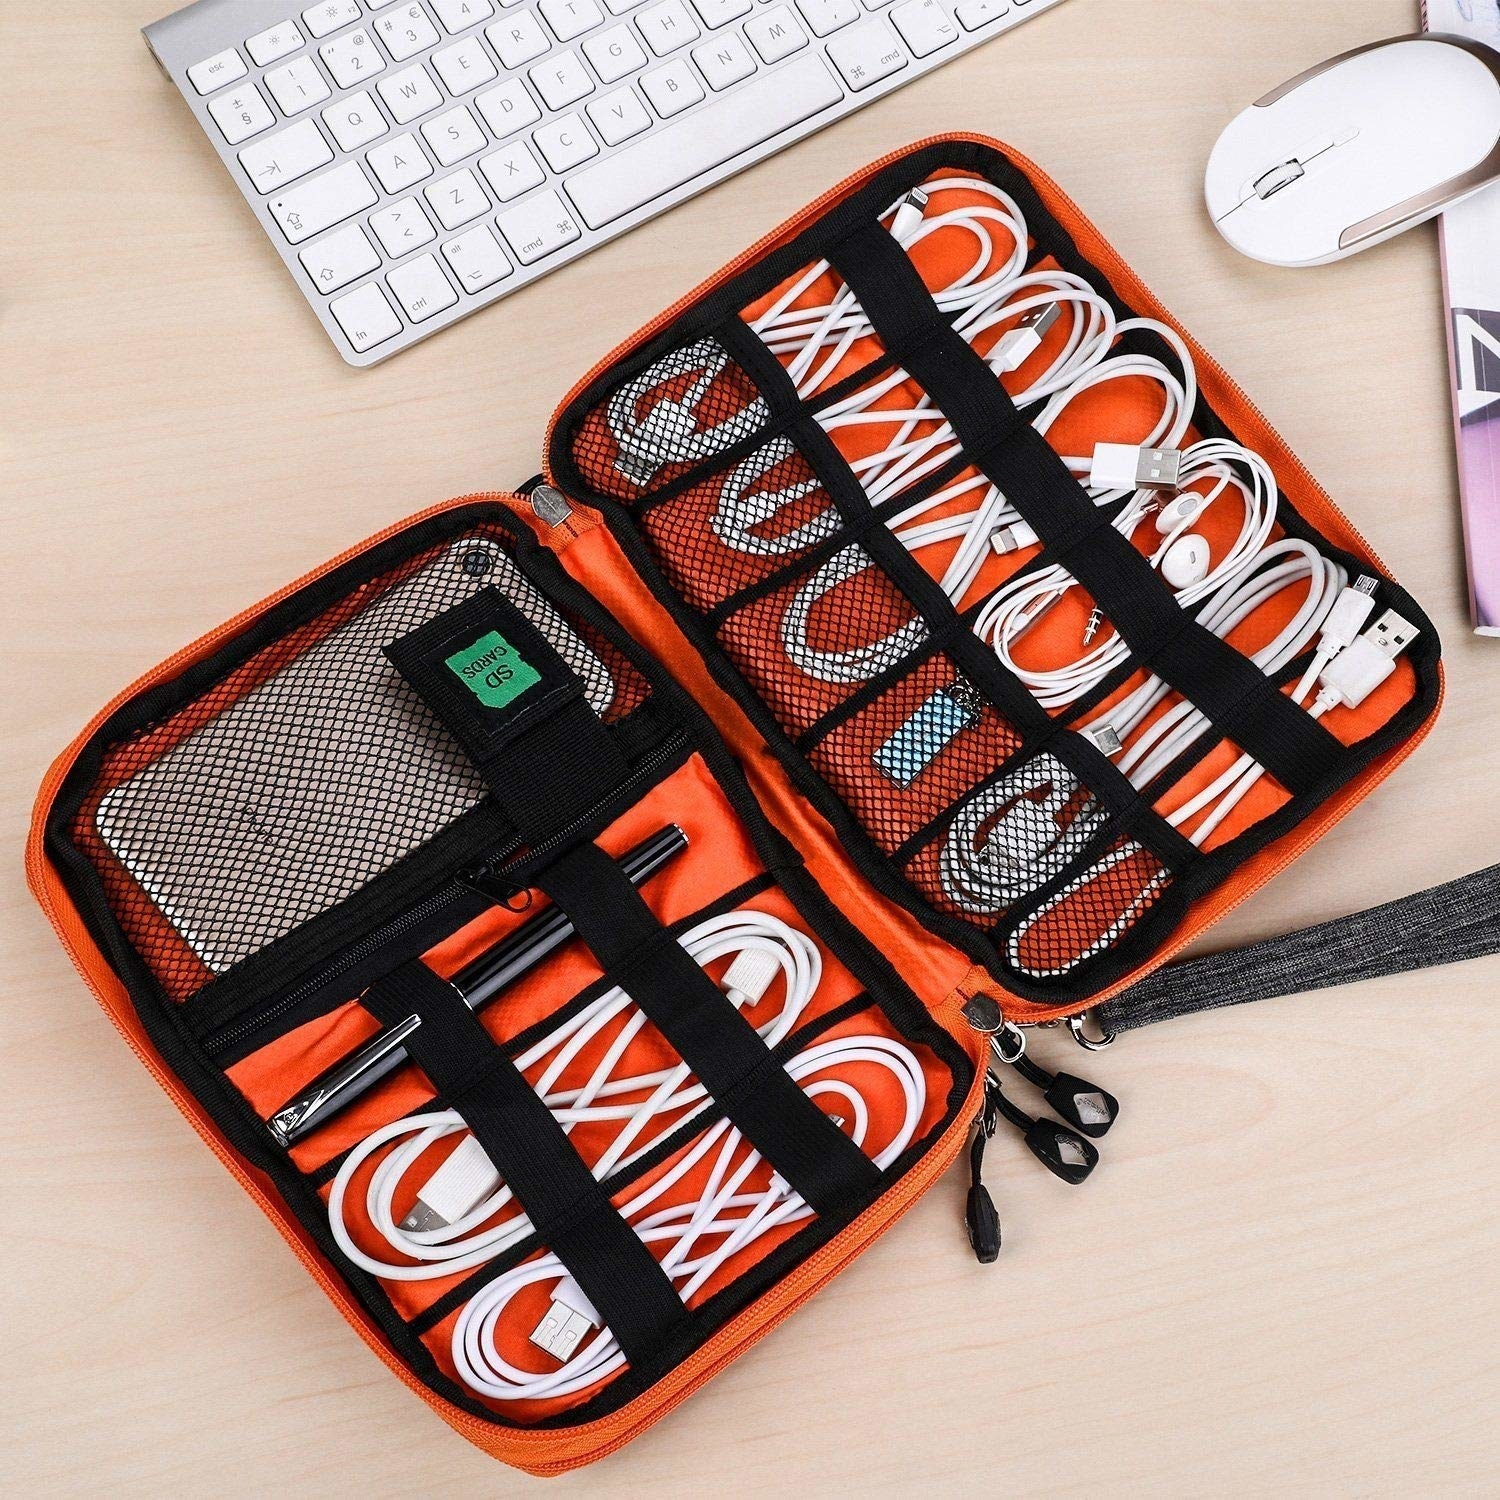 Cables, earphones, a phone, and a pen stored in the orange and black organiser.